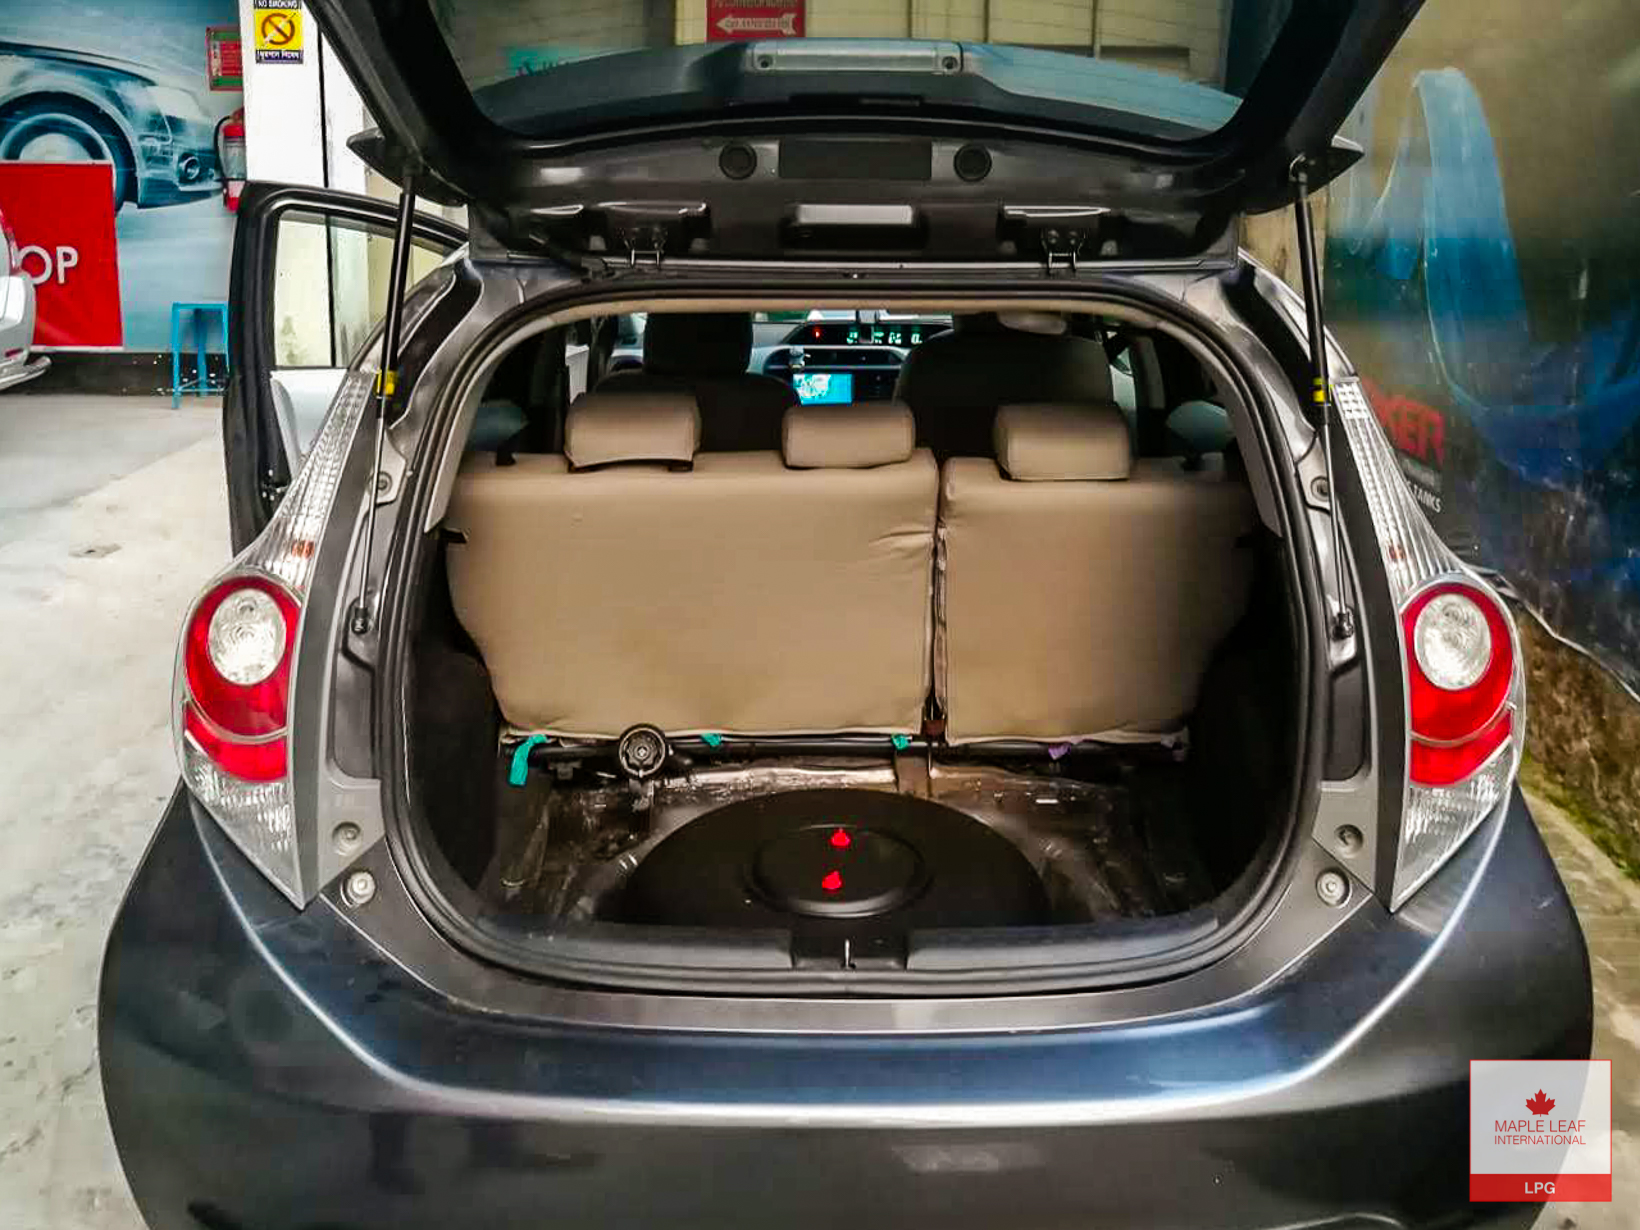 The days of the LPG tank taking over your boot are gone. There are new tank innovations that preserve your boot space for important things, like luggage! The new toroidal LPG tanks are doughnut shaped and typically are fitted within the spare wheel well.